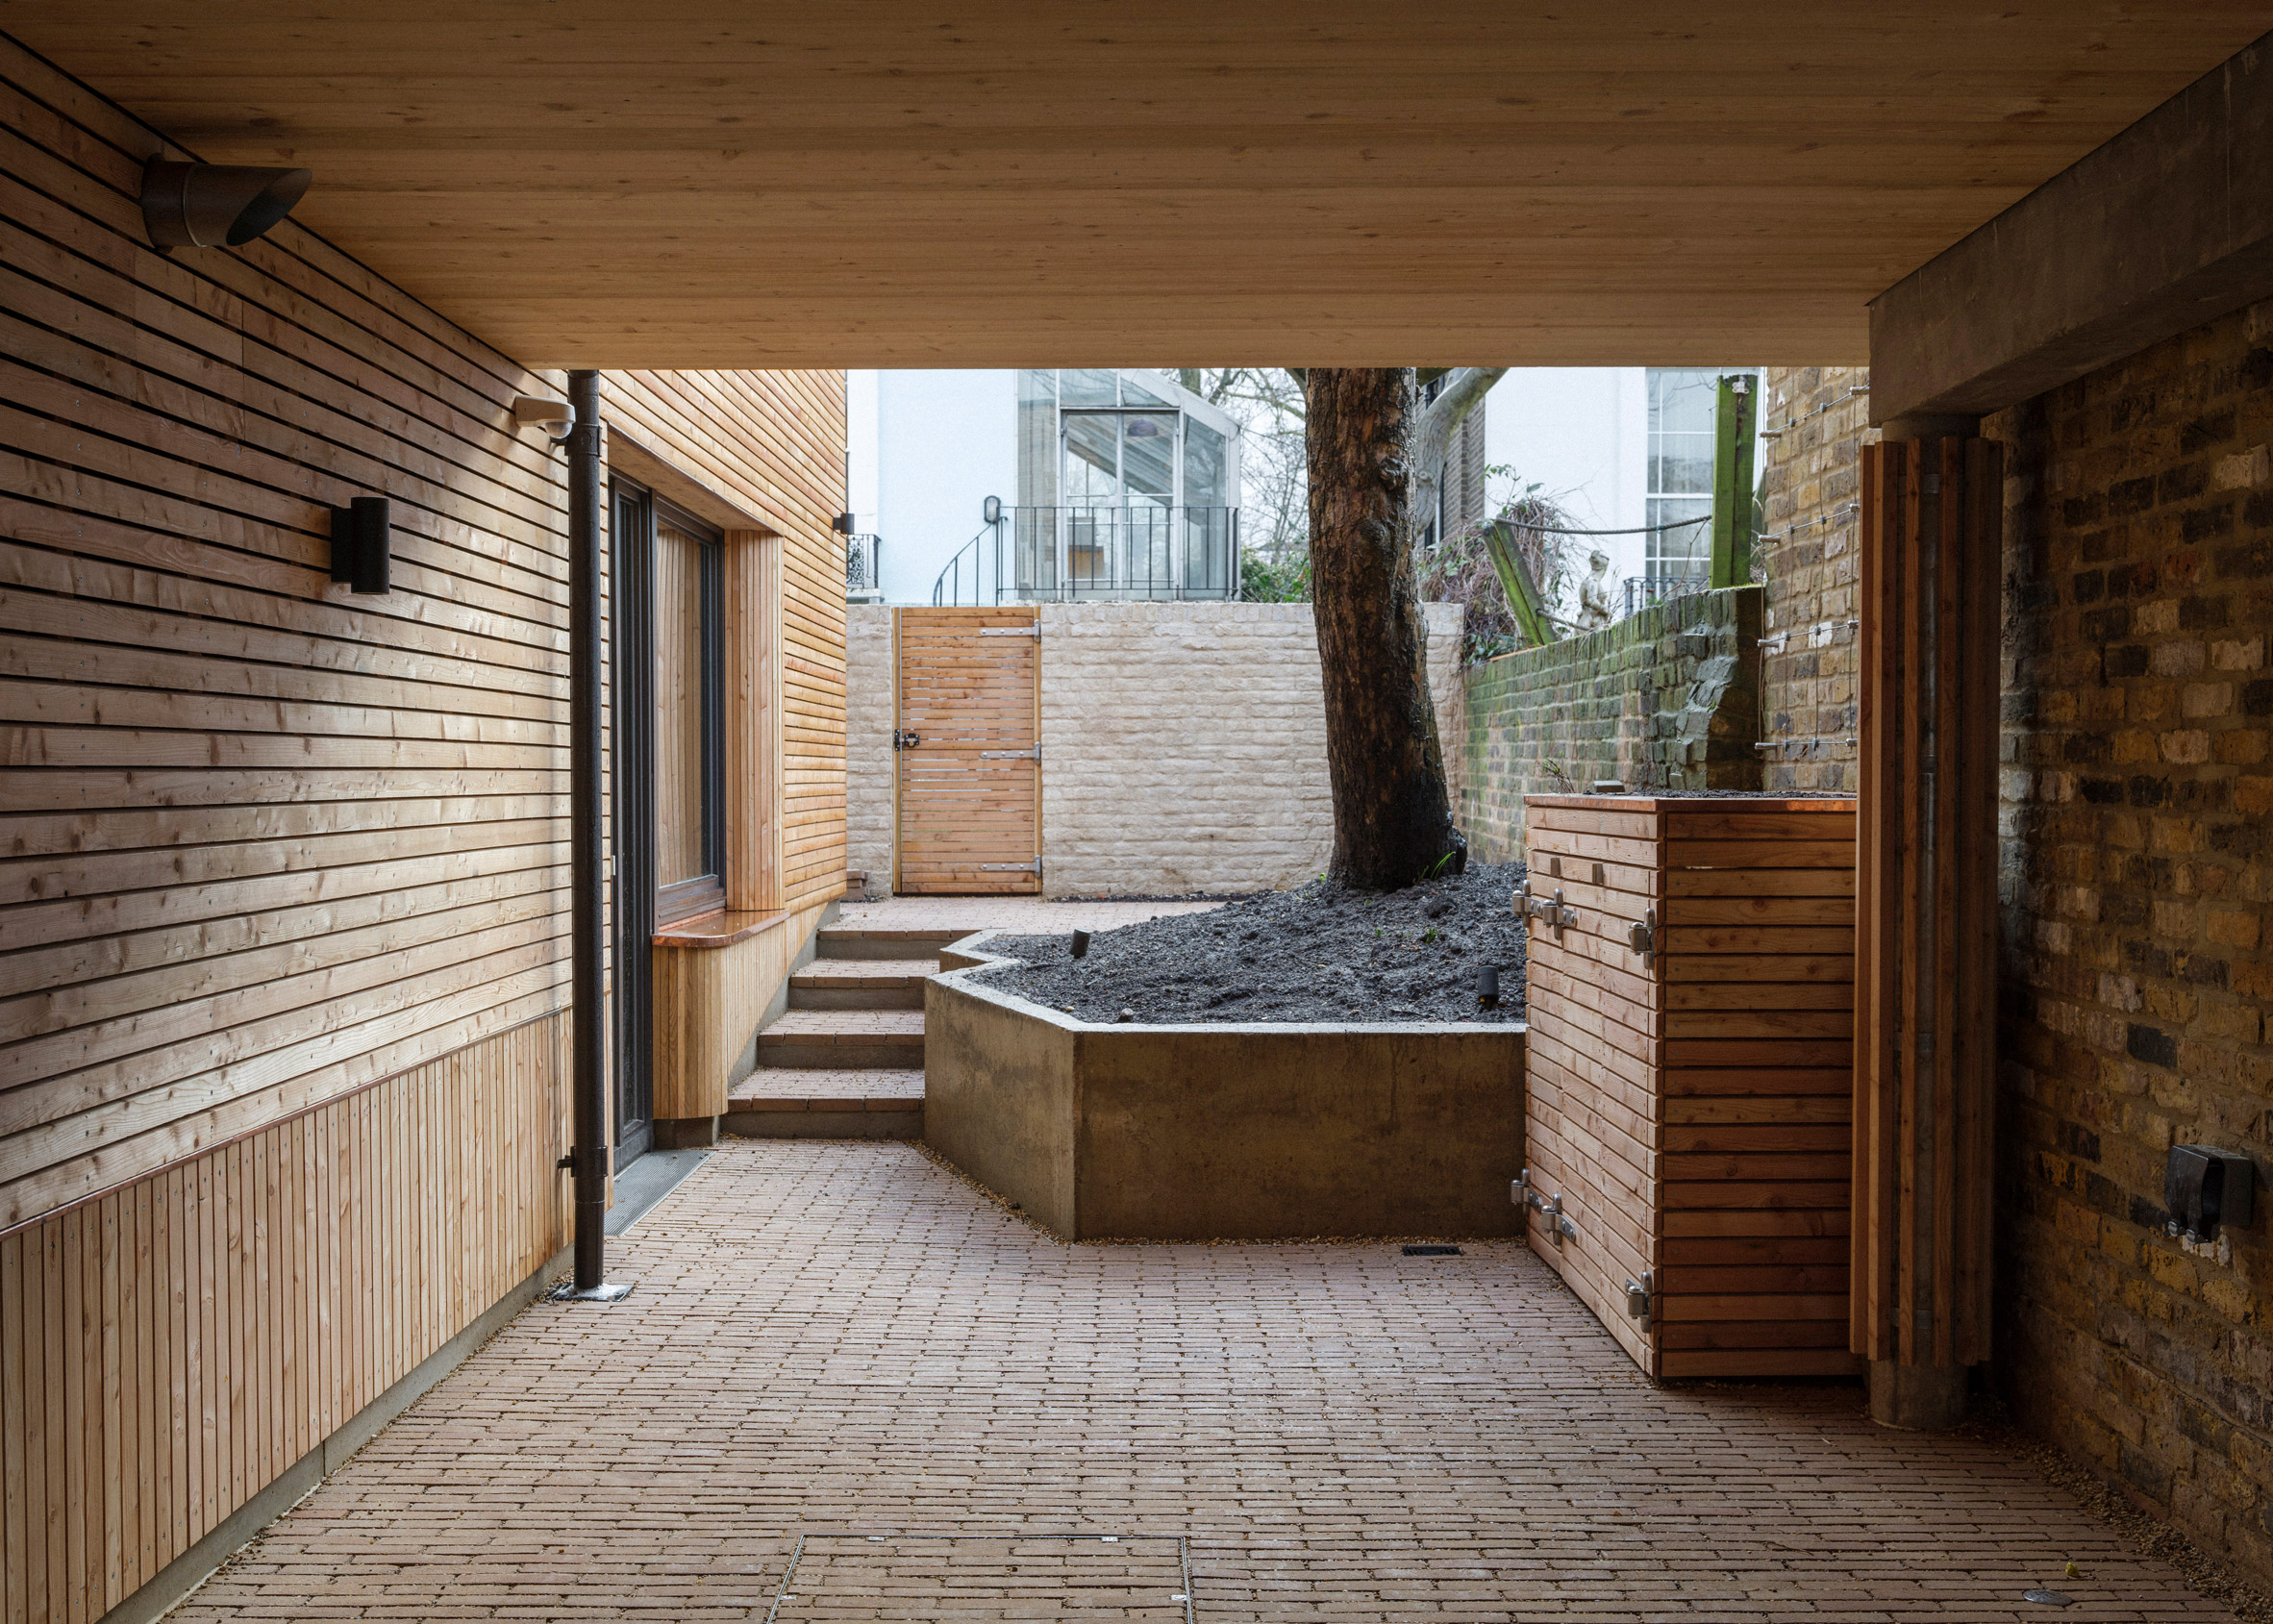 Camden Mews Max Fordham House by Bere Architects